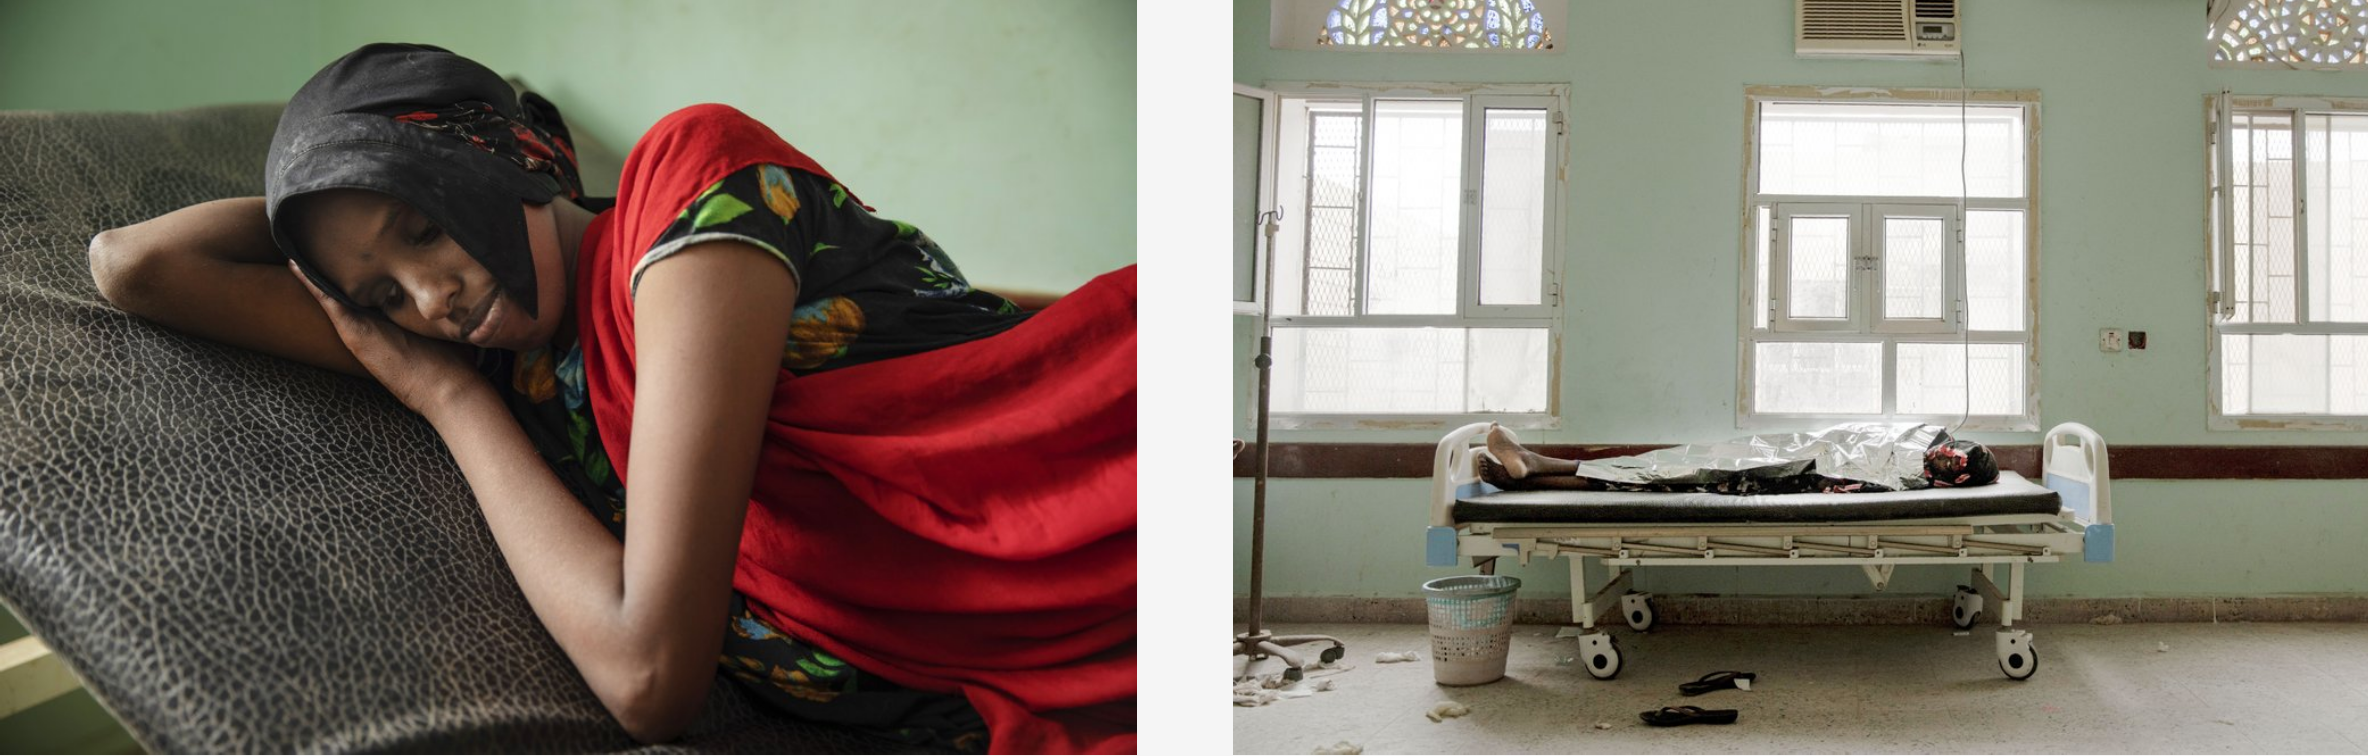 LEFT: In this July 26, 2019 photo, Fadya Mohammed, a migrant from Ethiopia, lays on a gurney after disembarking from a boat and feeling sick from the sea, at the Ras al-Ara Hospital, Lahj, Yemen. In Djibouti, her and her sister were held by traffickers, who beat them and ordered them to ask their parents to send money for their release. The parents had to borrow money from neighbors to secure their daughter's release. (AP Photo/Nariman El-Mofty). RIGHT: In this July 26, 2019 photo, 22-year-old Dasto Mohammed, a migrant from Ethiopia, lays on a gurney after disembarking from a boat and feeling sick from the sea, at the Ras al-Ara Hospital, Lahj, Yemen. Mohammed left home in Harar, Ethiopia with her younger sister Fadya. The girls spent an entire month traveling before they reached Yemen's Ras al-Ara .(AP Photo/Nariman El-Mofty)